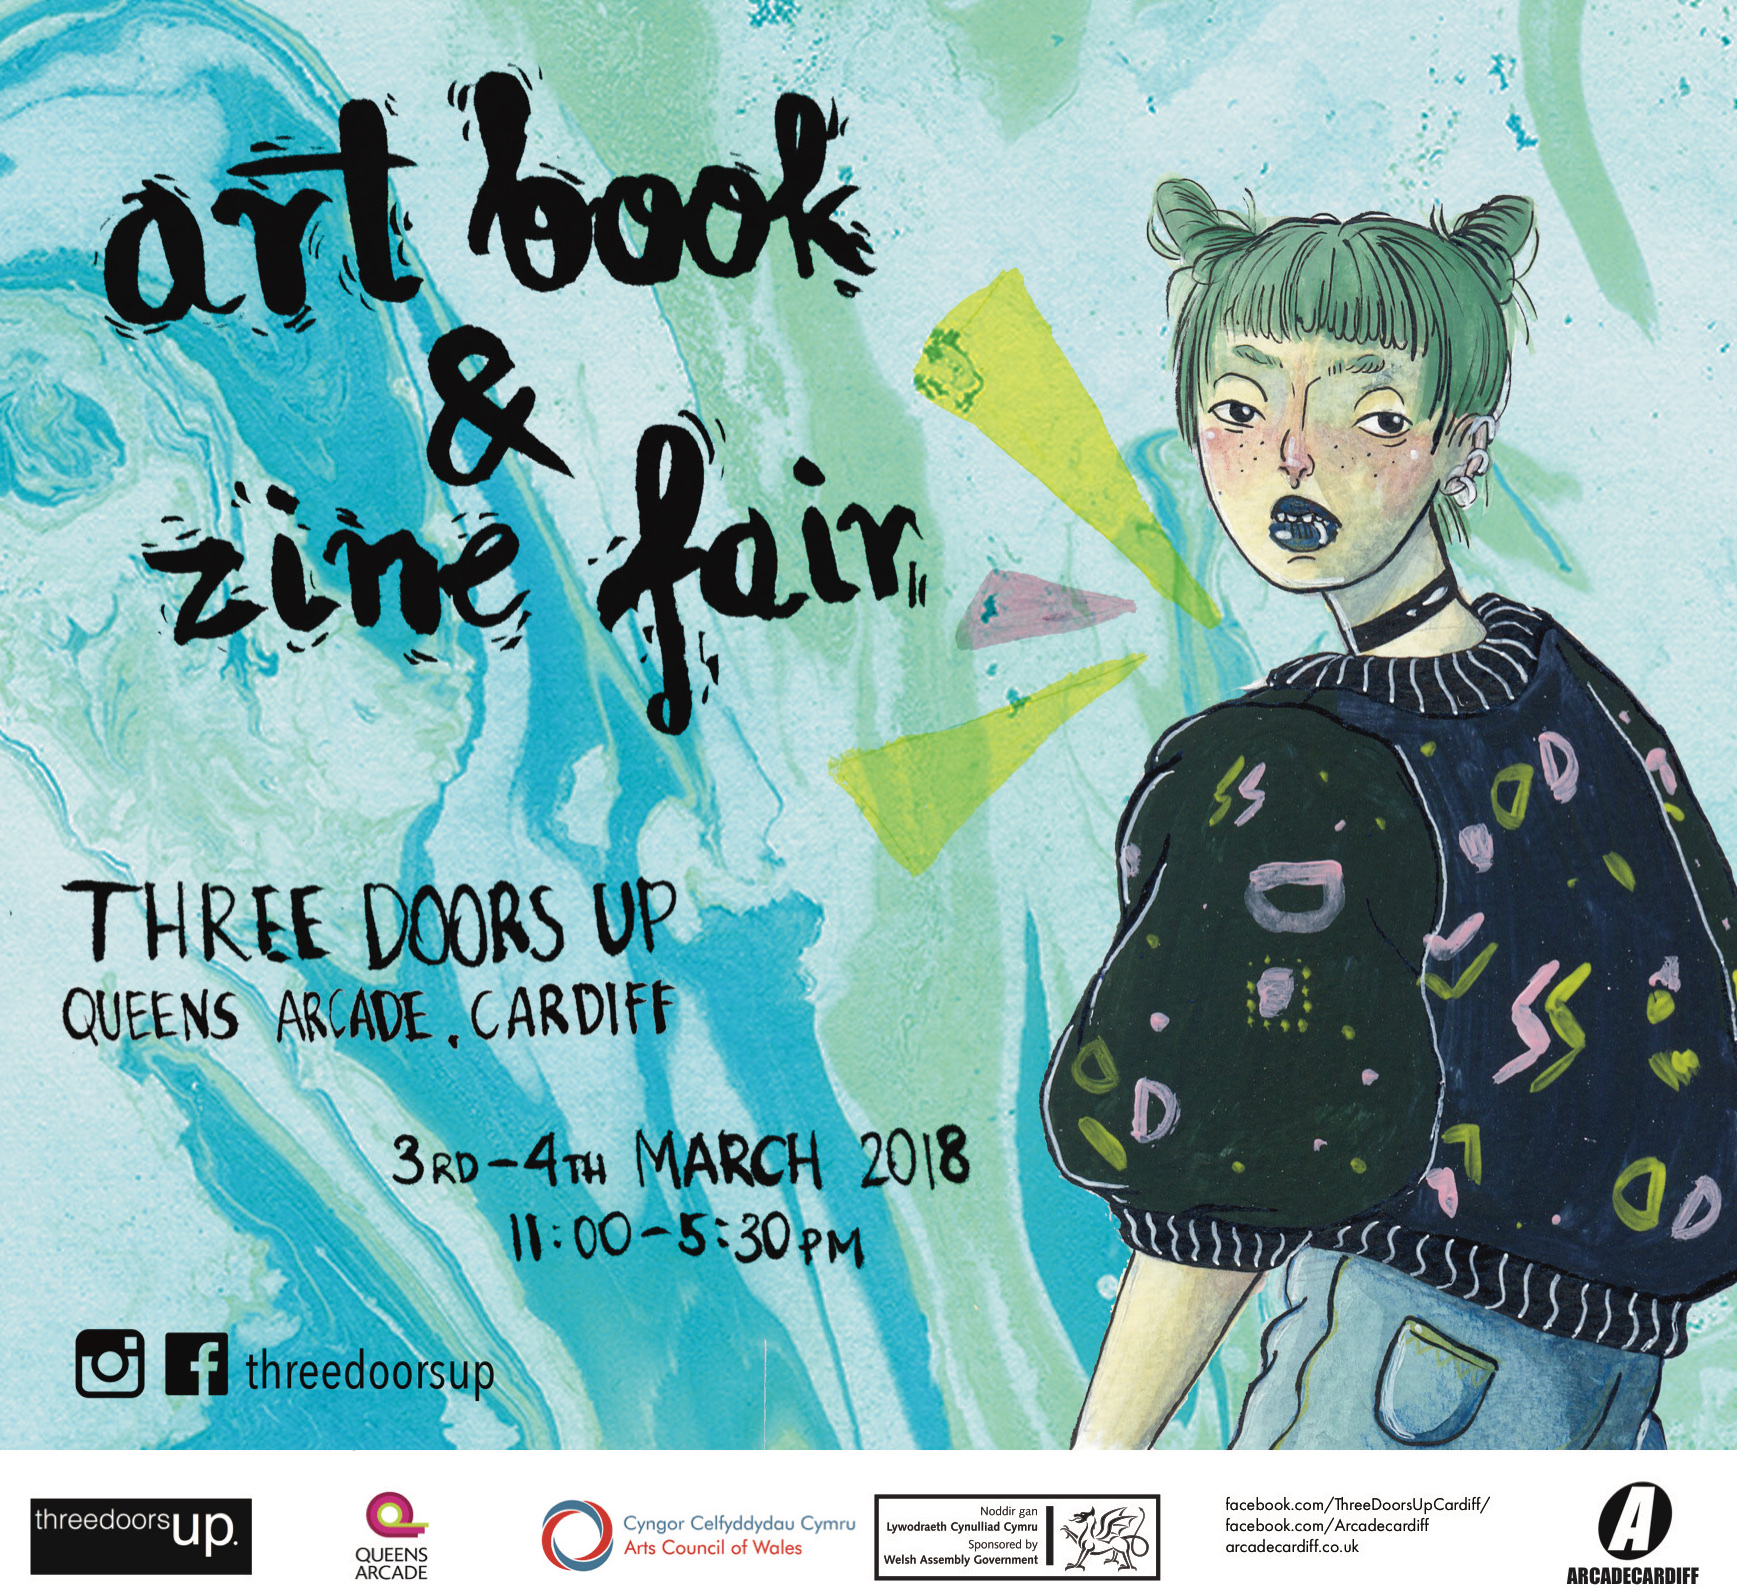 artbook zine fair poster